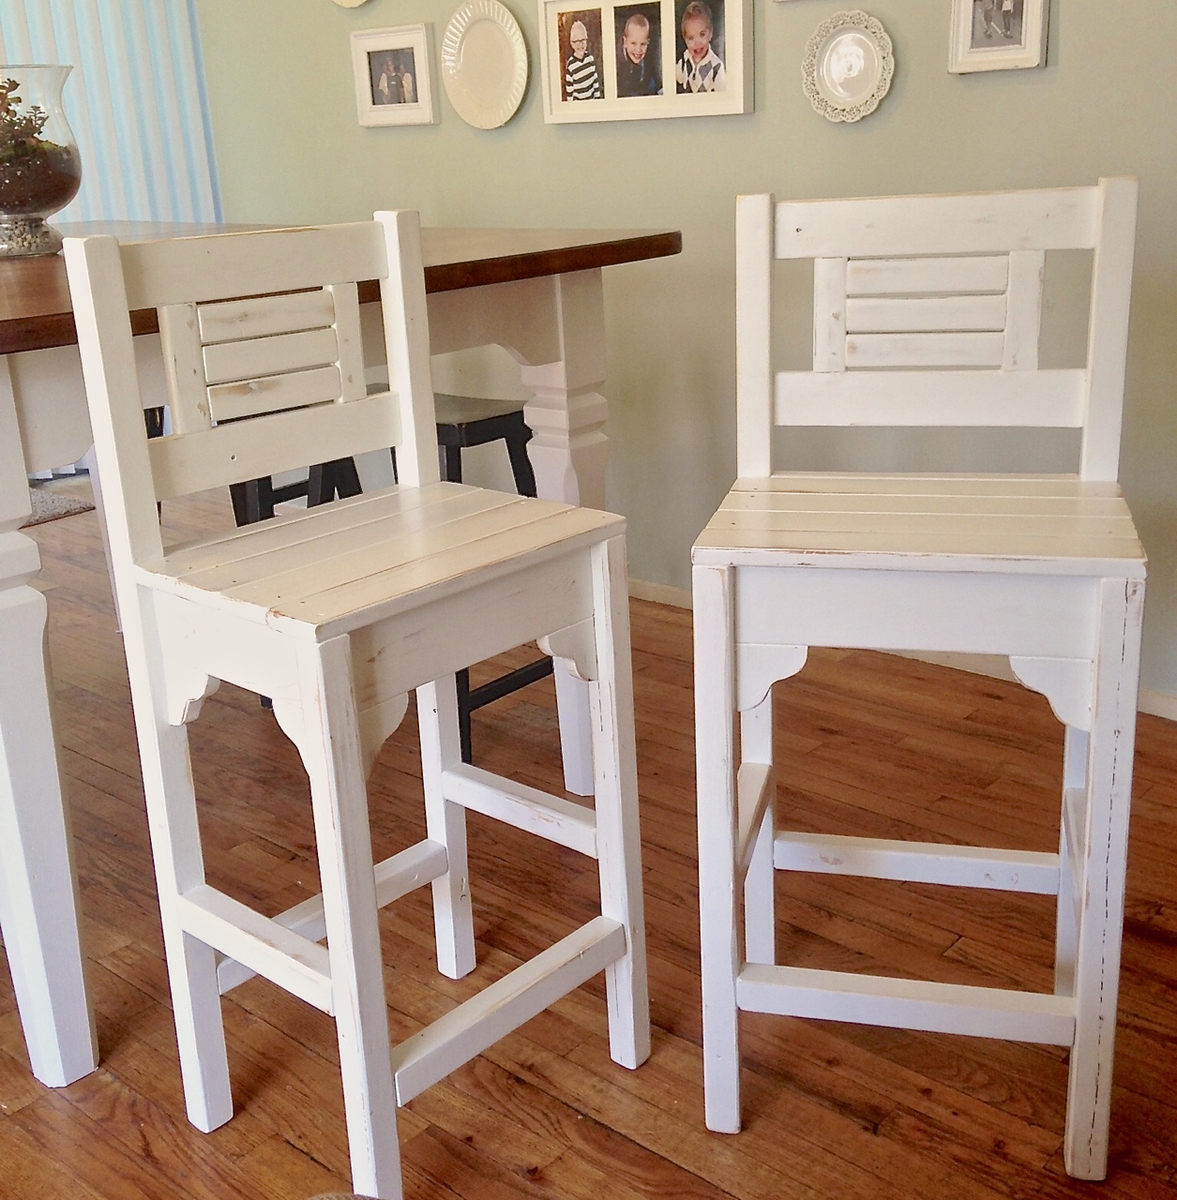 Ana White Vintage Bar Stools Diy Projects